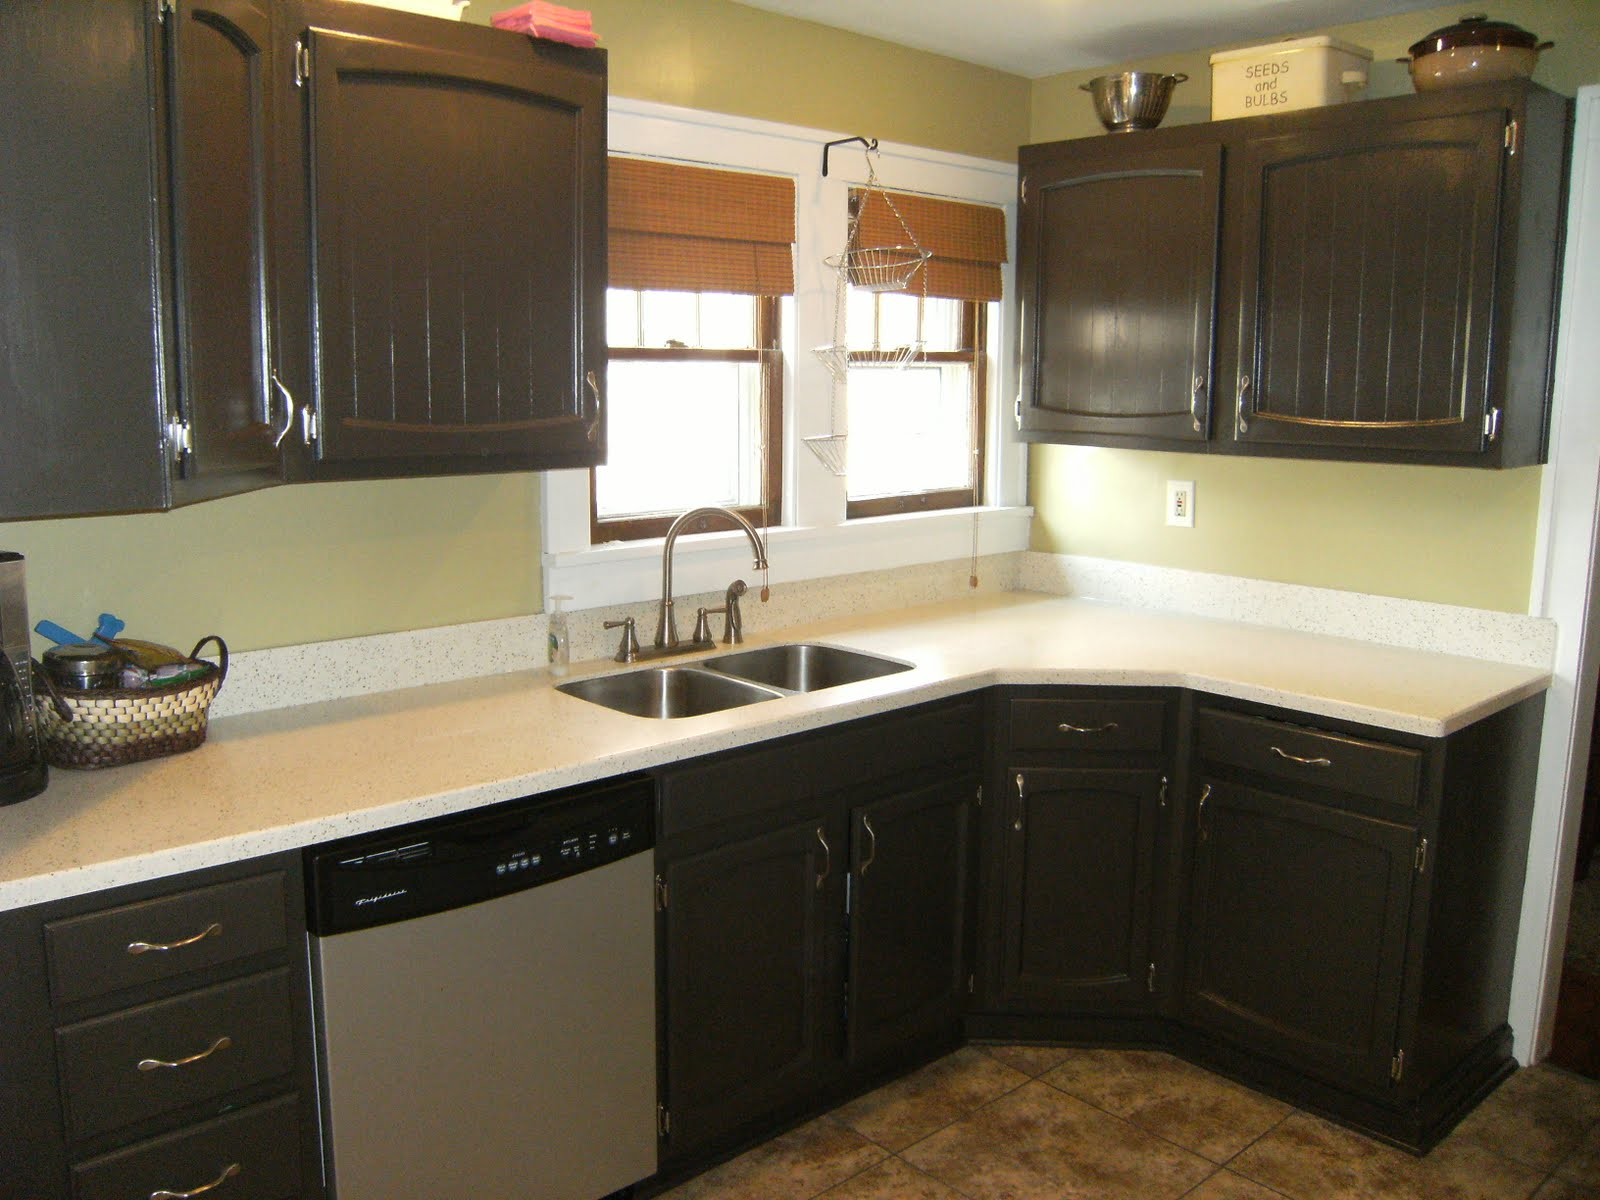 painted kitchen cabinets projects house painted black kitchen cabinets photos home improvement area